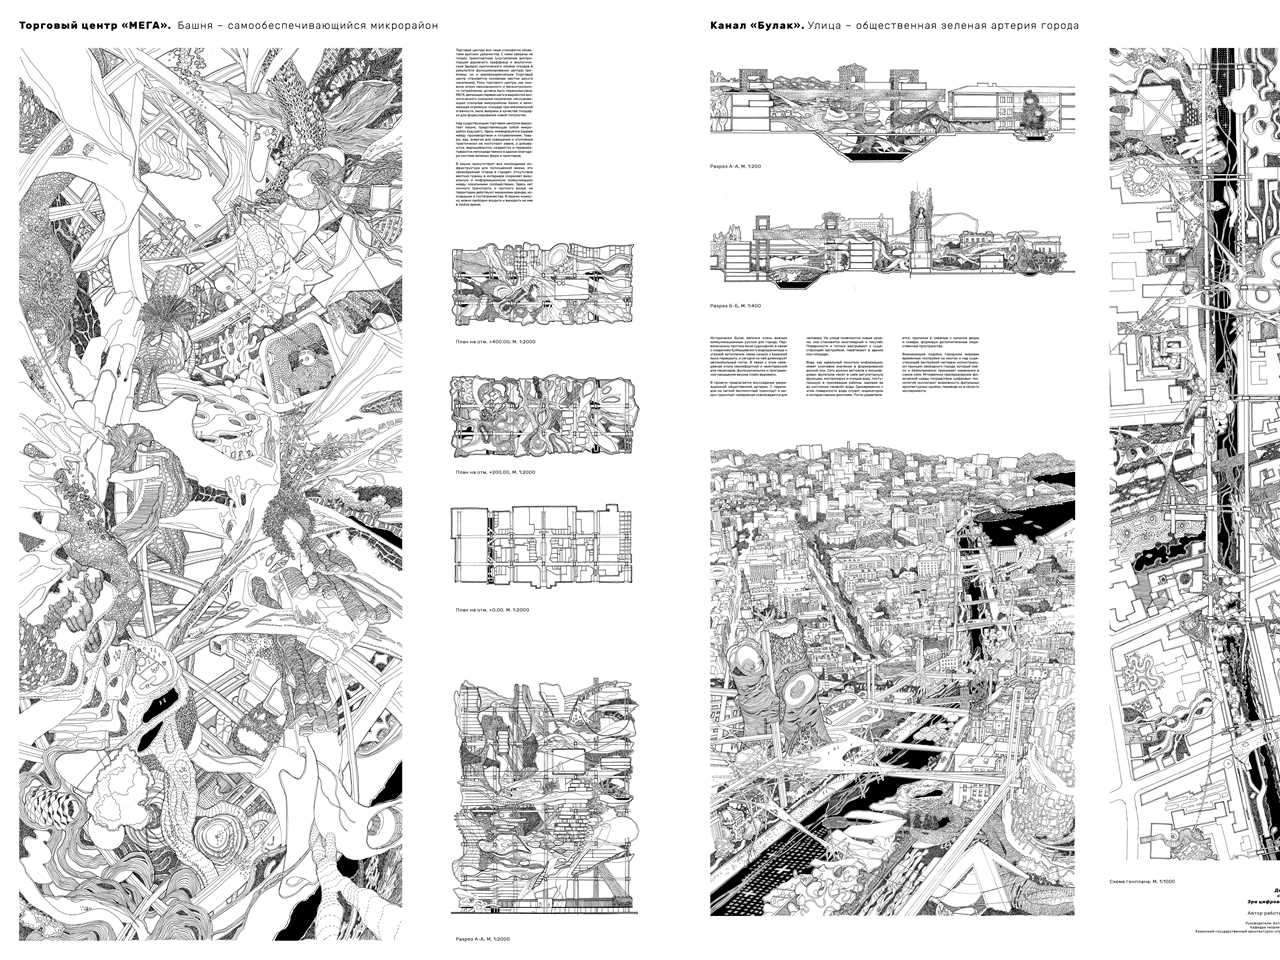 New spatial concepts for the city of the future, Kazan, Russia